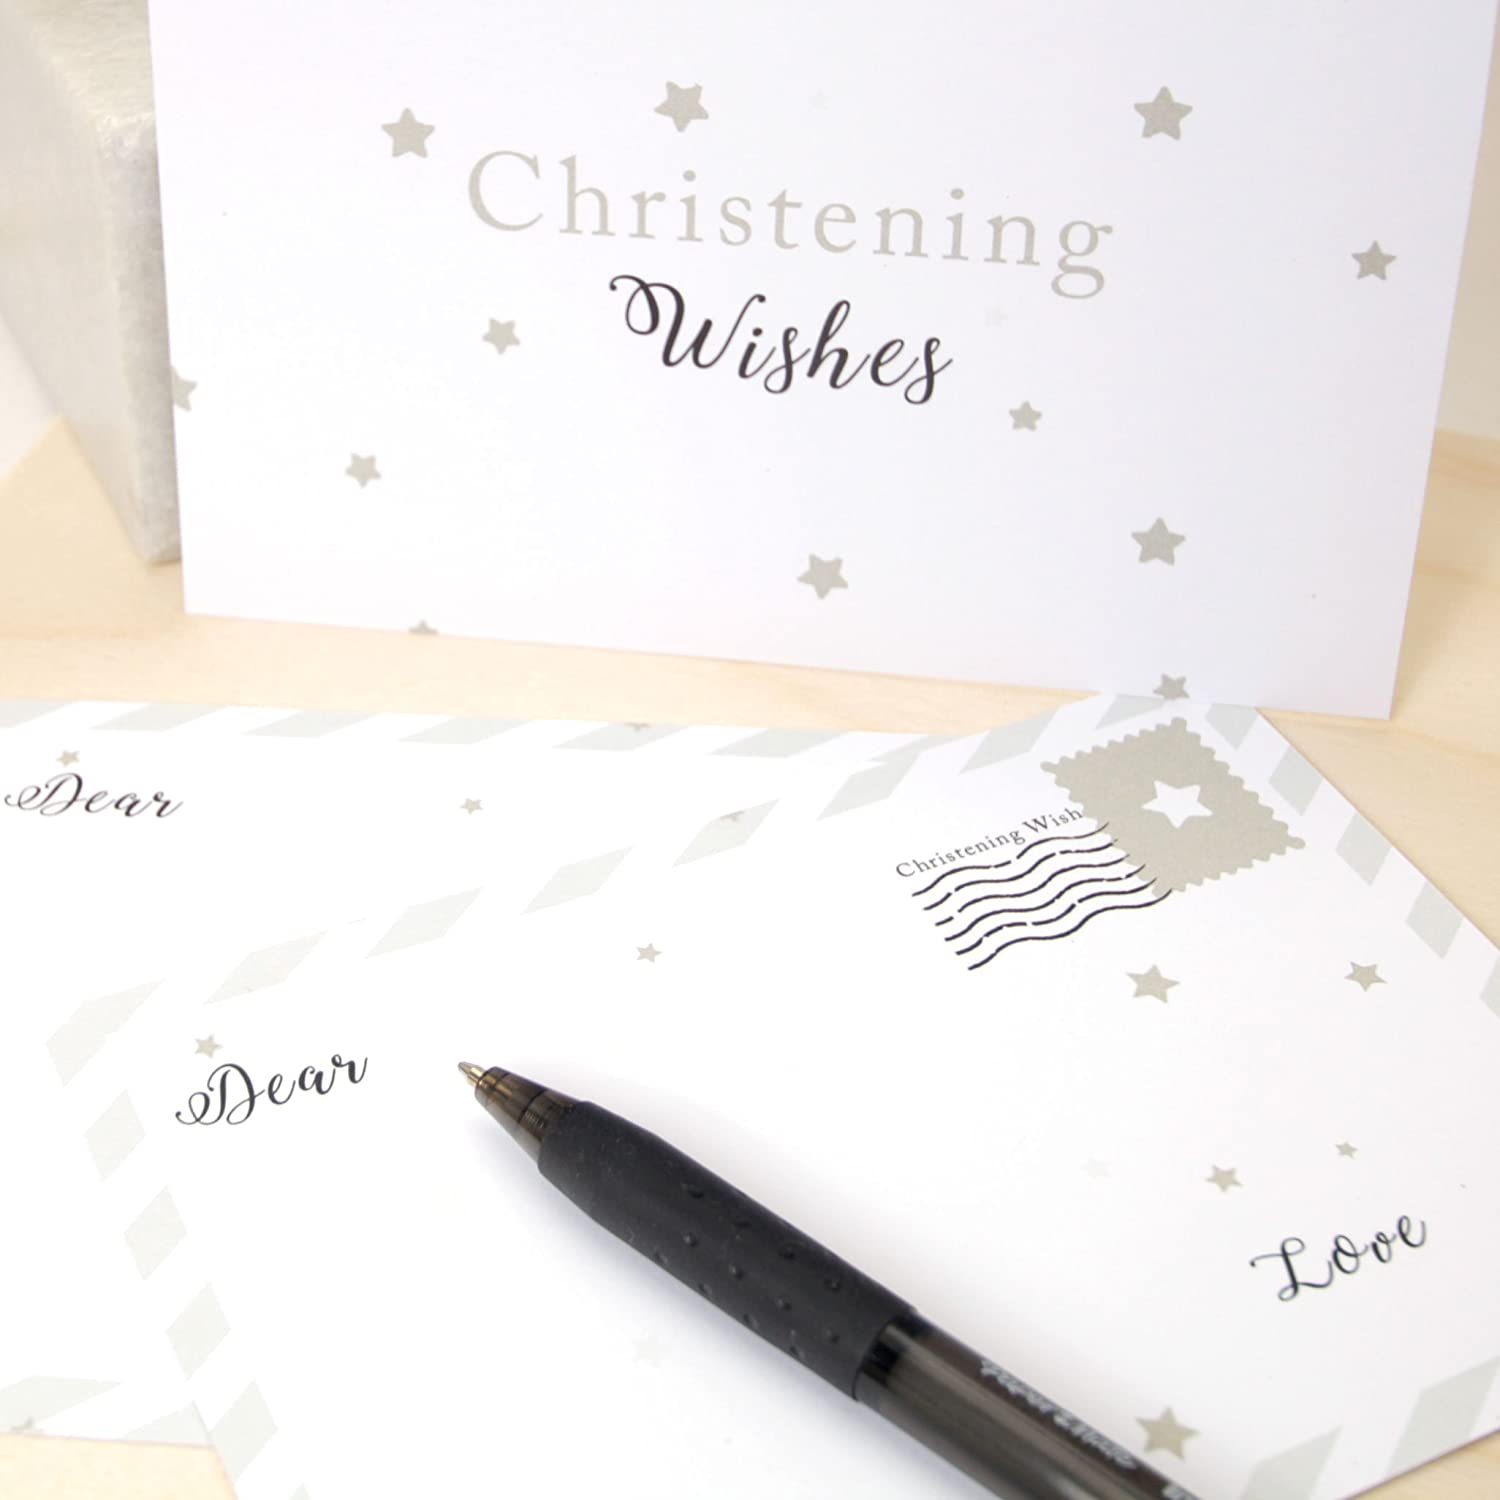 Christening Guest Book Styled Wishes Cards For 16 Guests Beautiful Keepsake Memory Cards with Pouch FREE UK Delivery (Pink) Rustic Robin